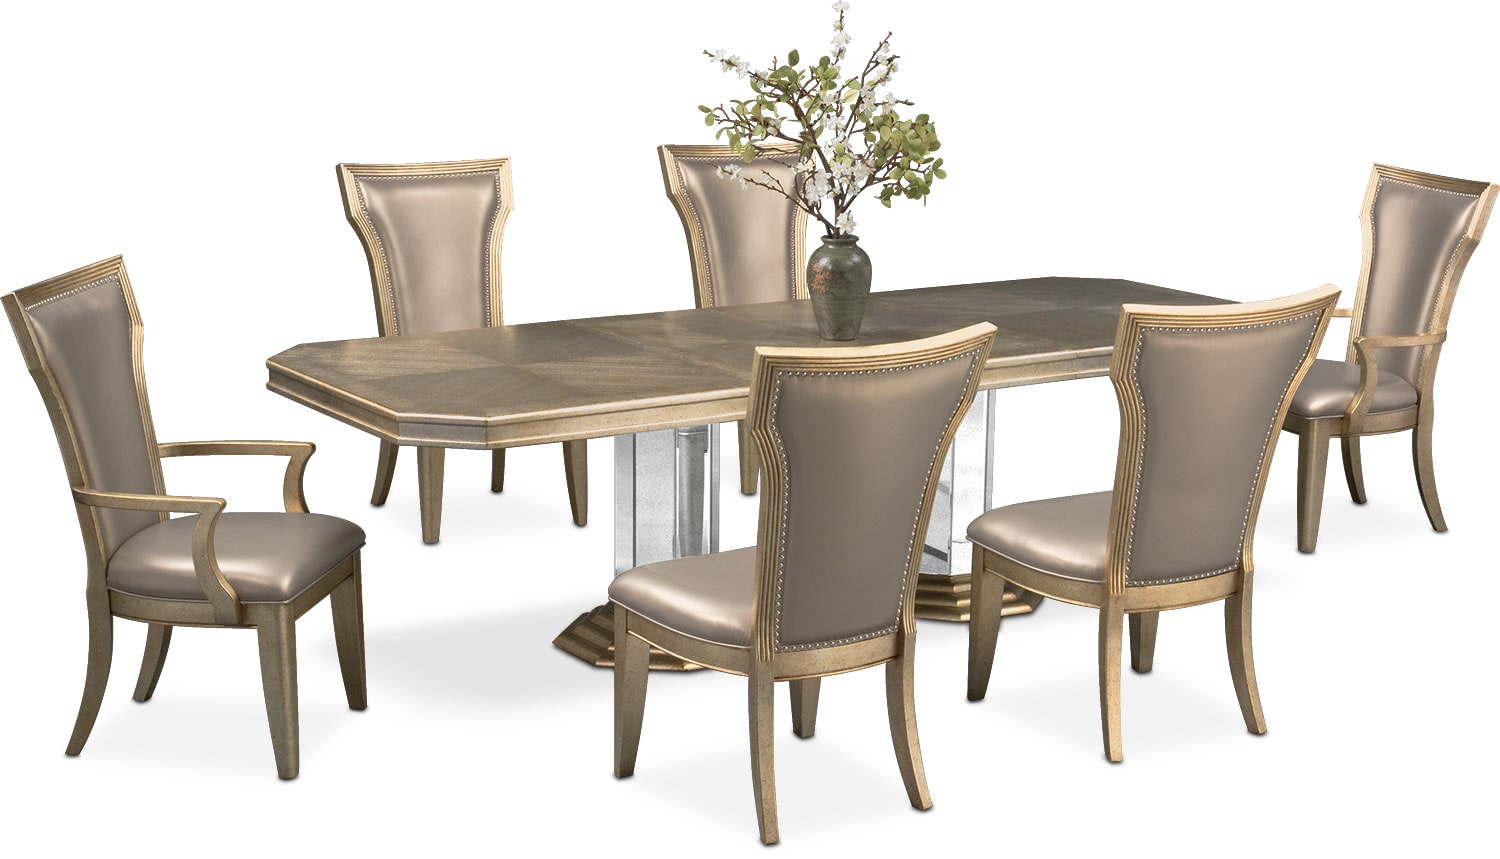 Table With Two Chairs Angelina Double Pedestal Table Two Arm Chairs And 4 Side Chairs Metallic